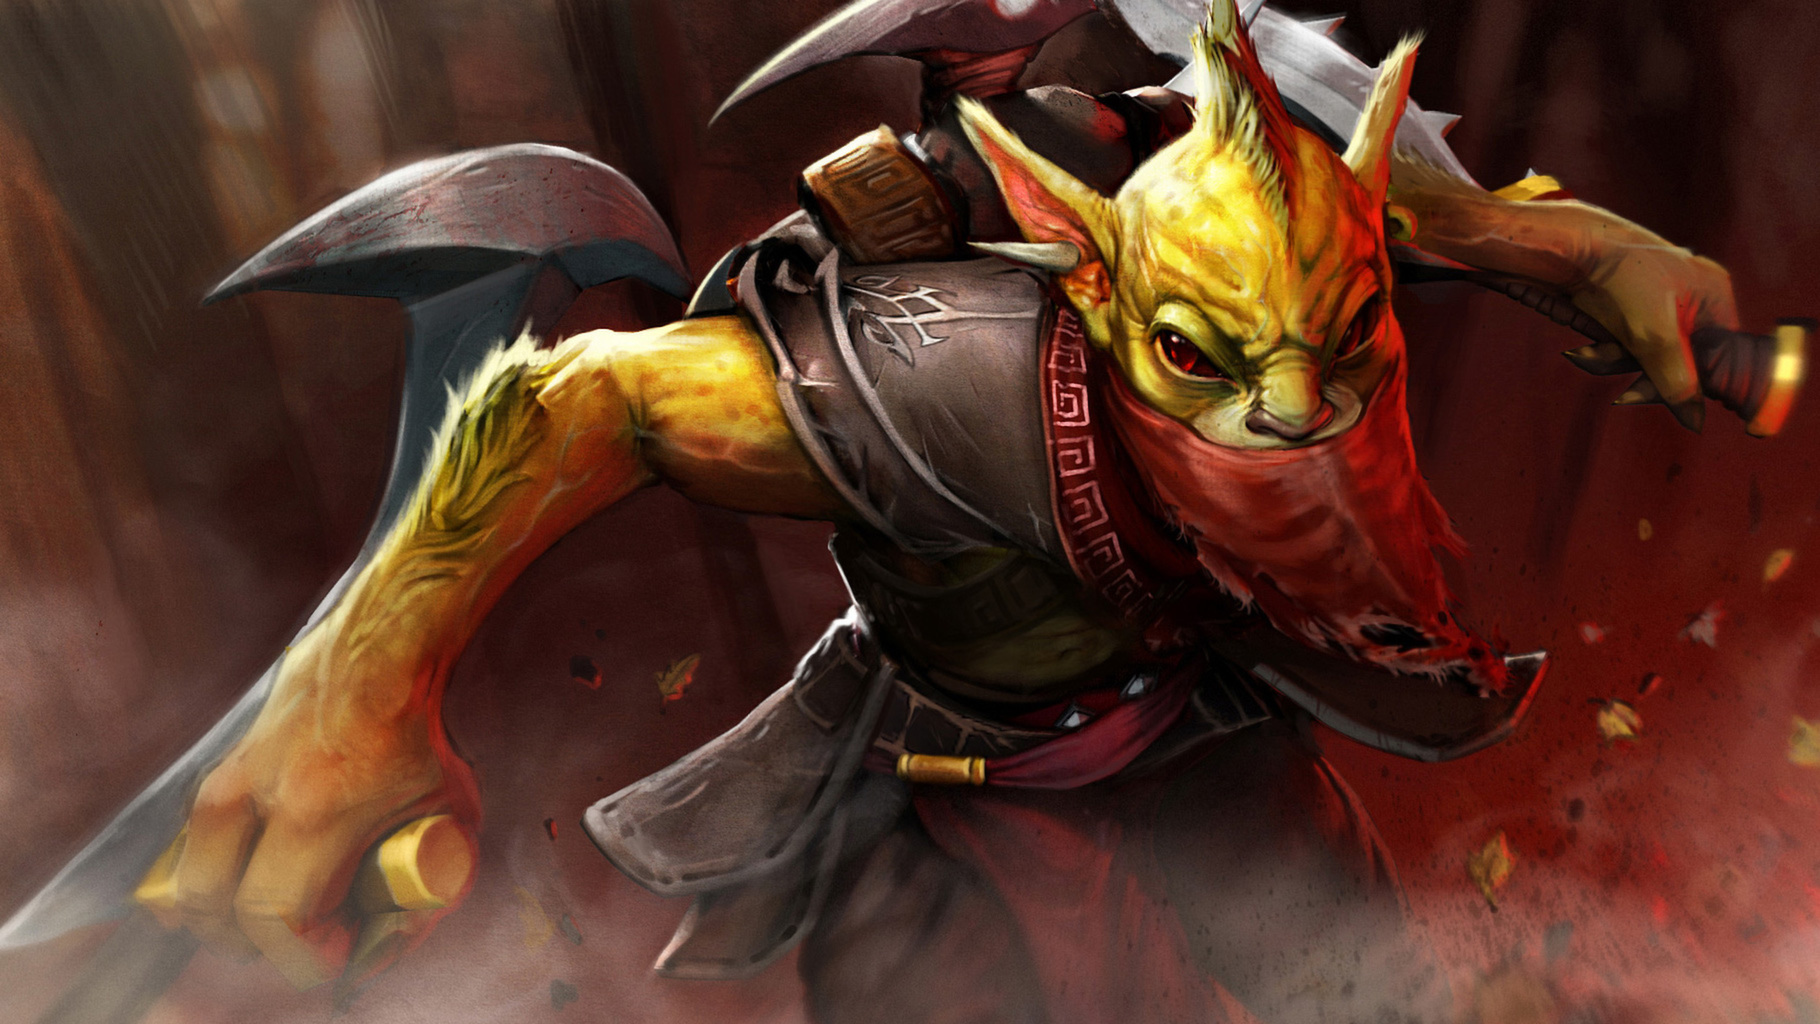 Dota 2: Valve Officially Launches Dota 2